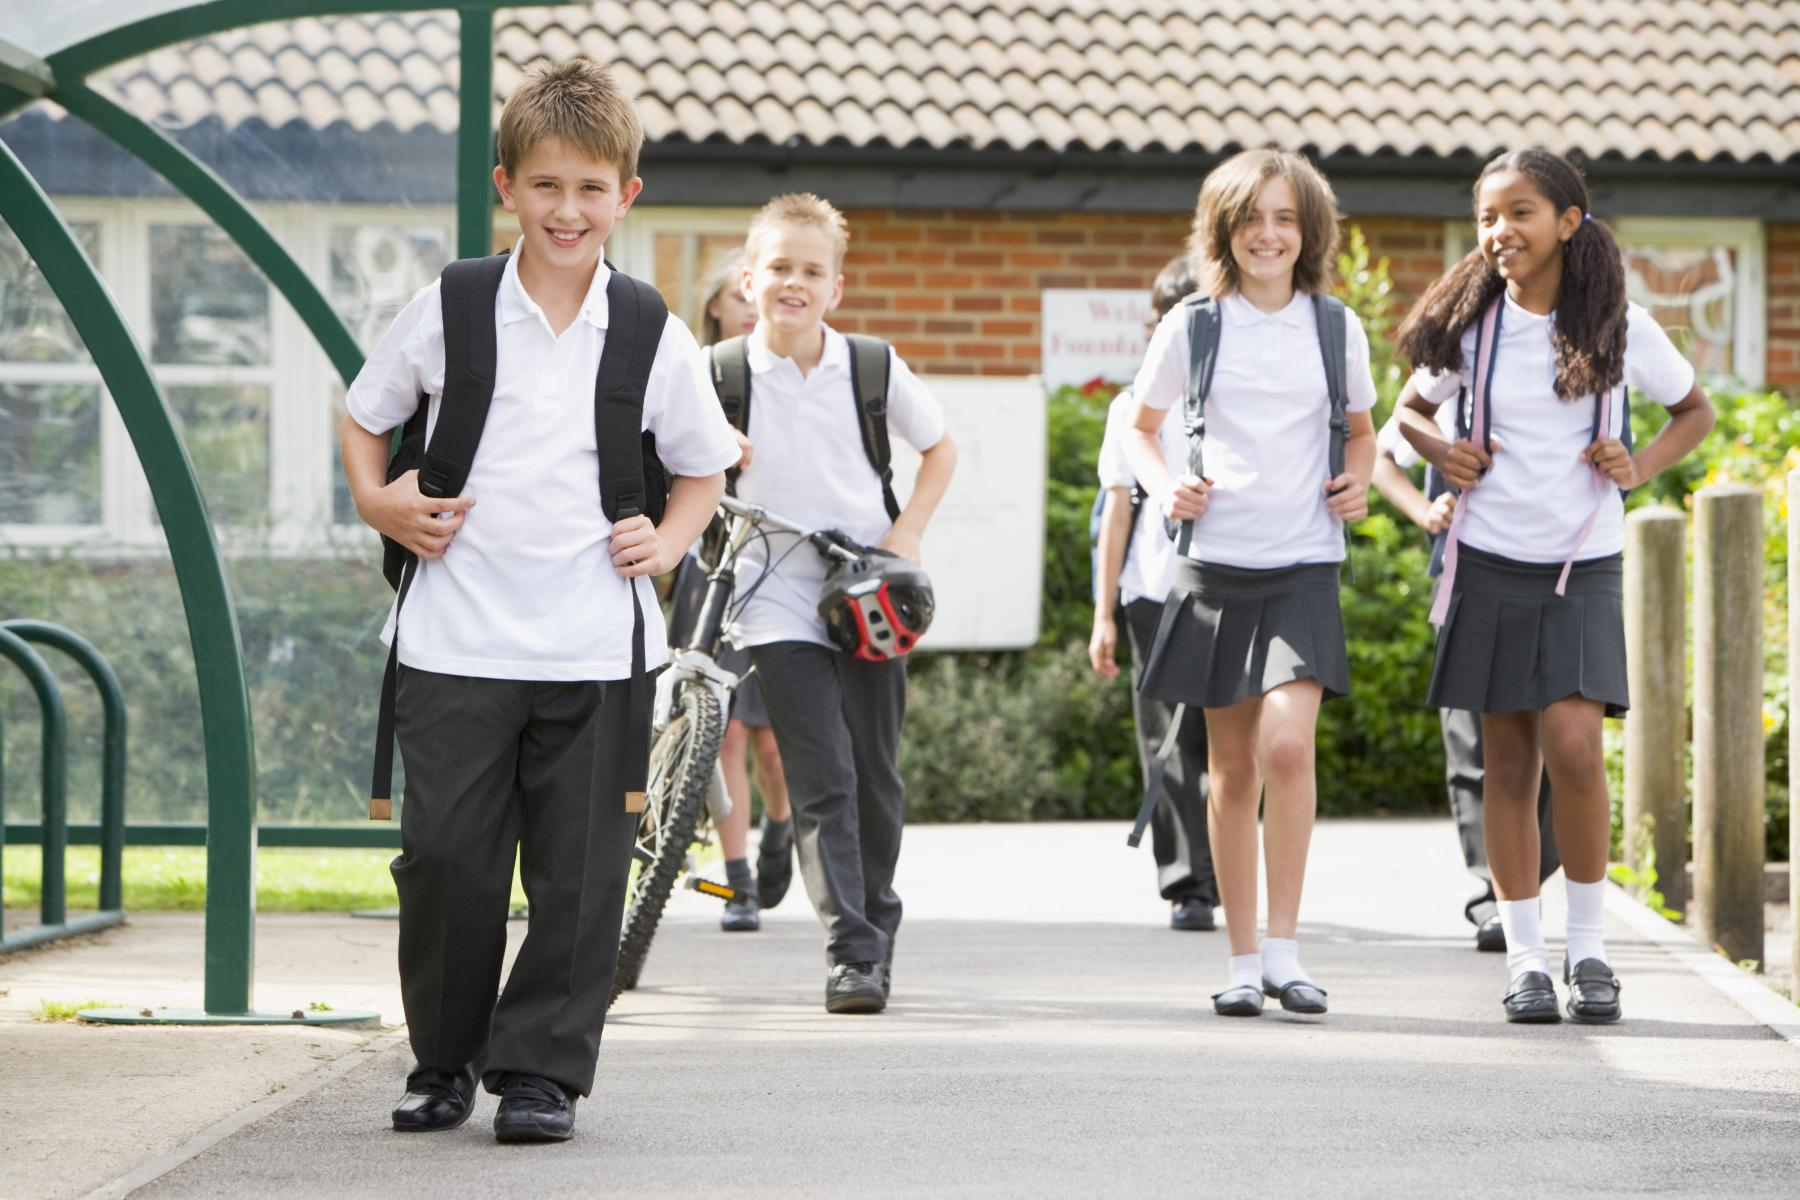 POSITIVE STEPS: Walking or cycling to school helps to boost children's health and eases demand for public transport.